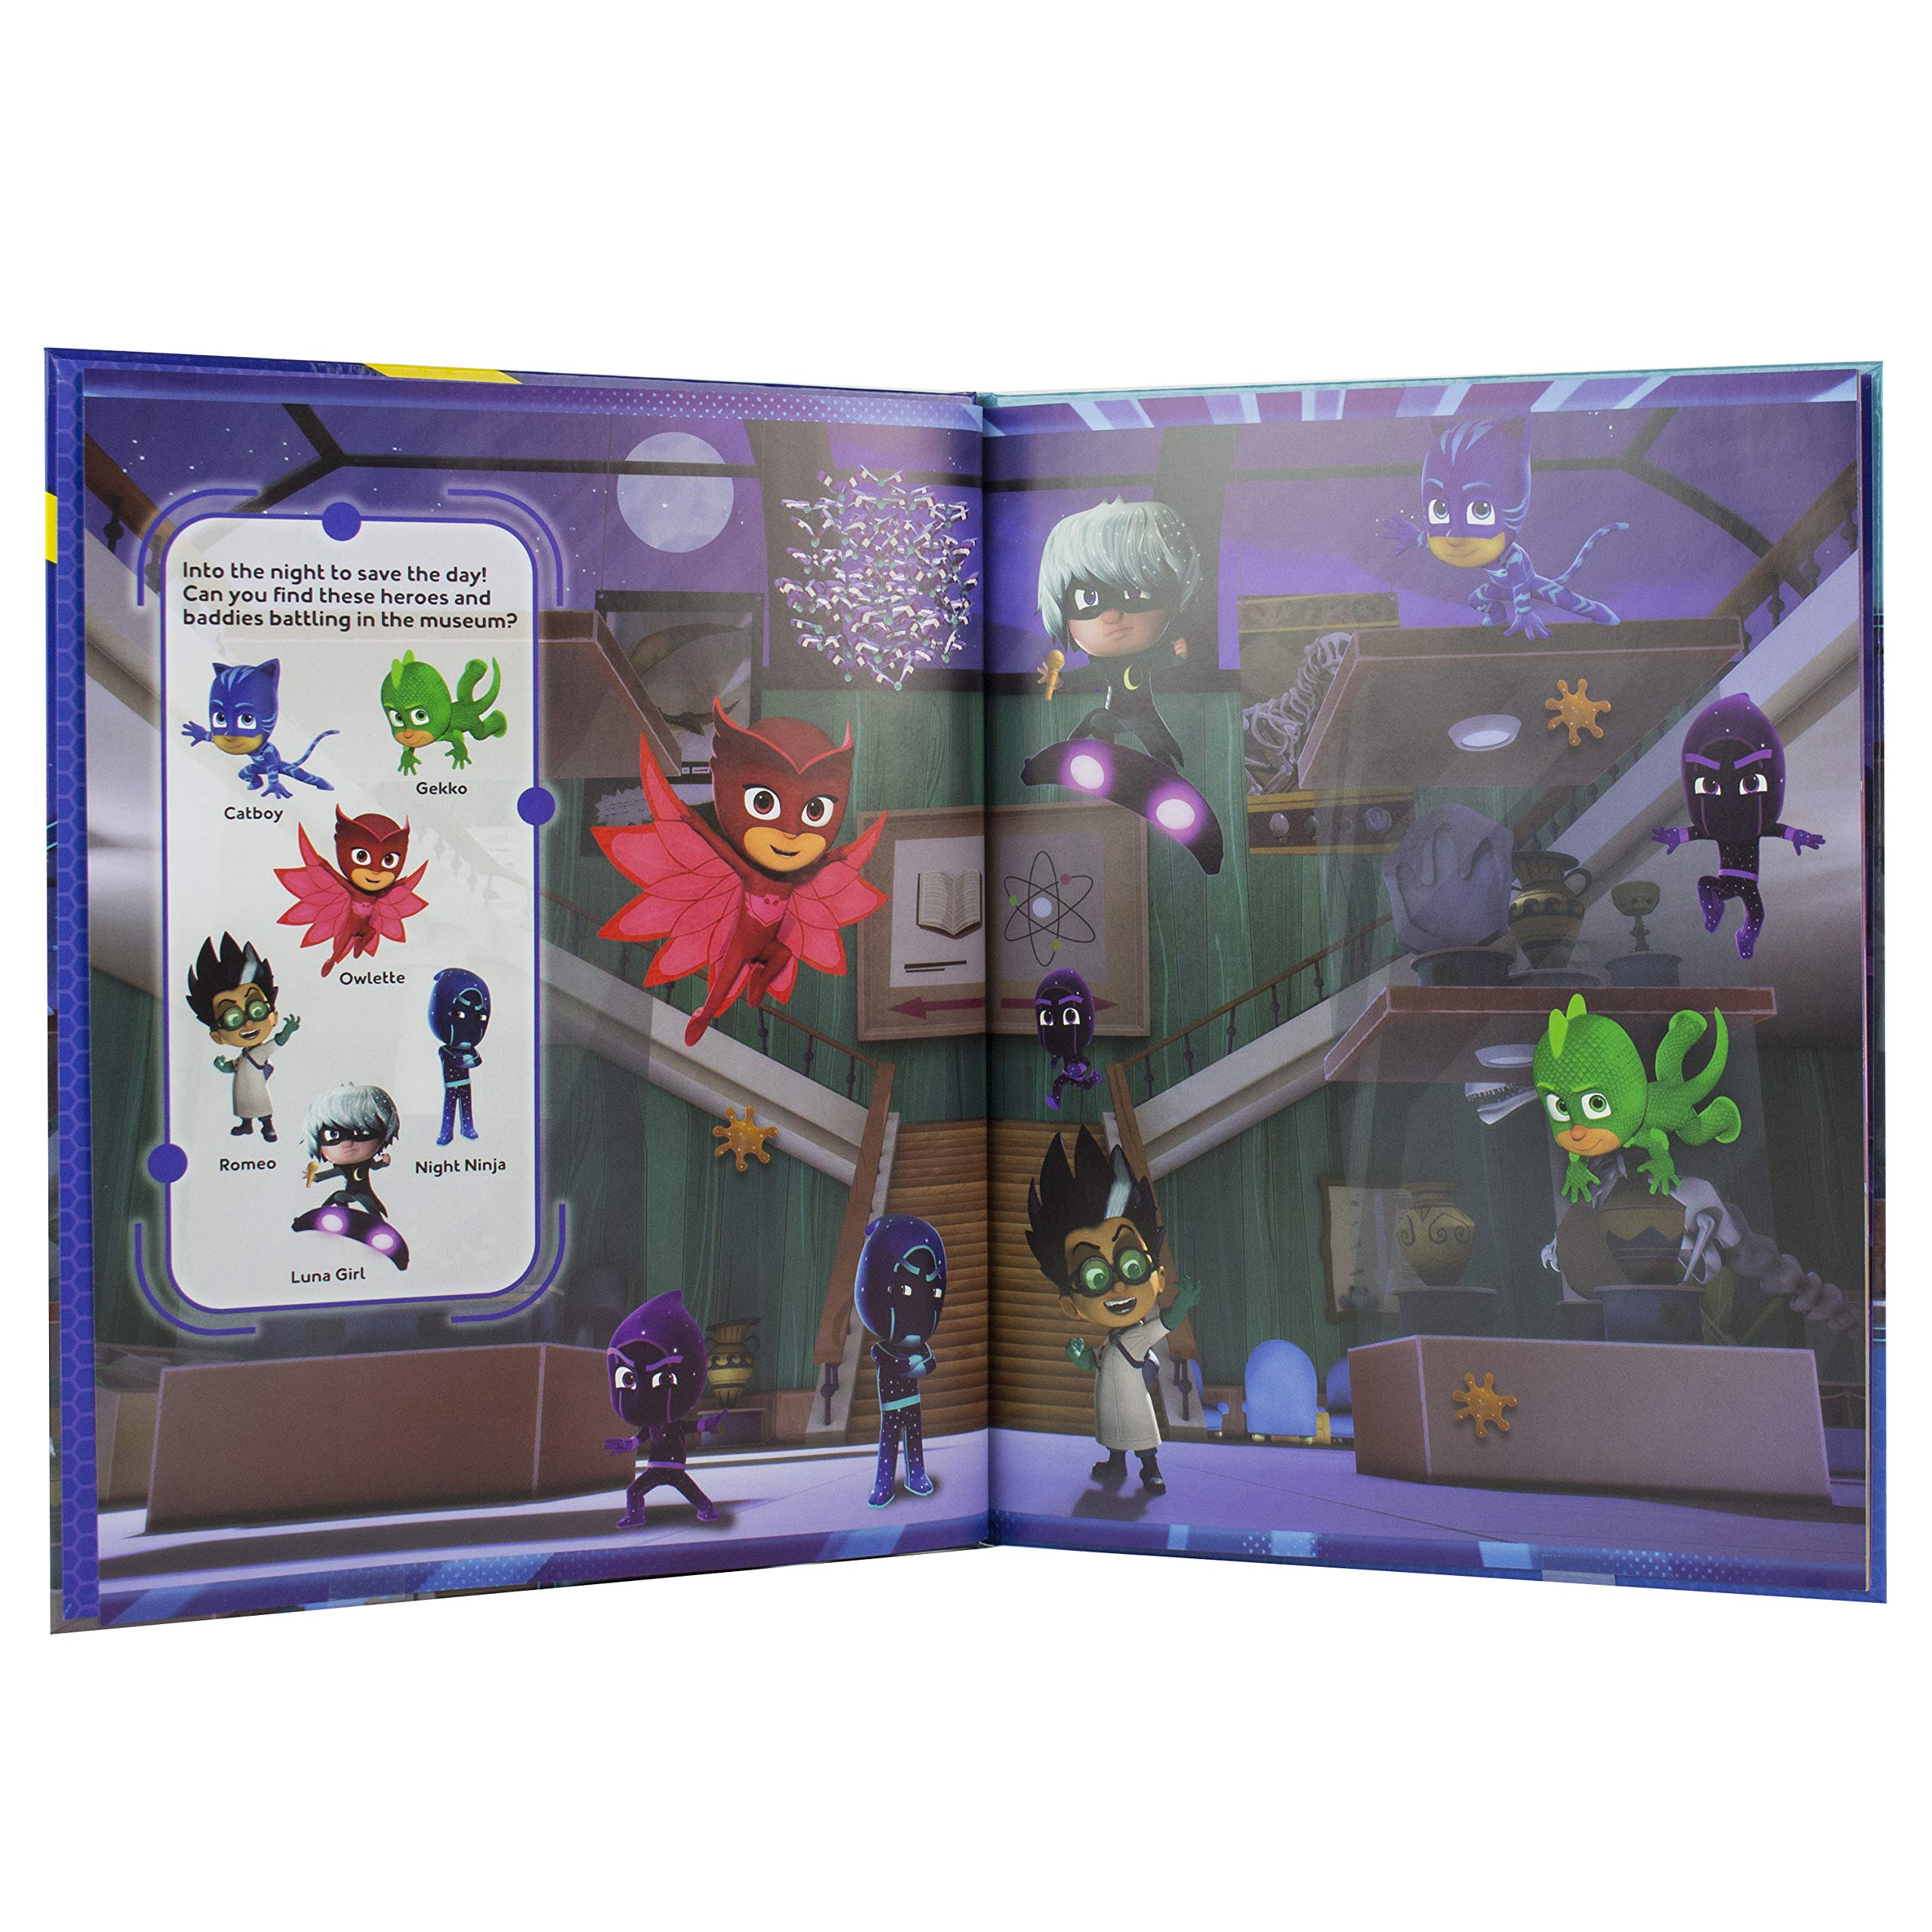 Pj Masks Look and Find: Amazon.es: Libros en idiomas extranjeros